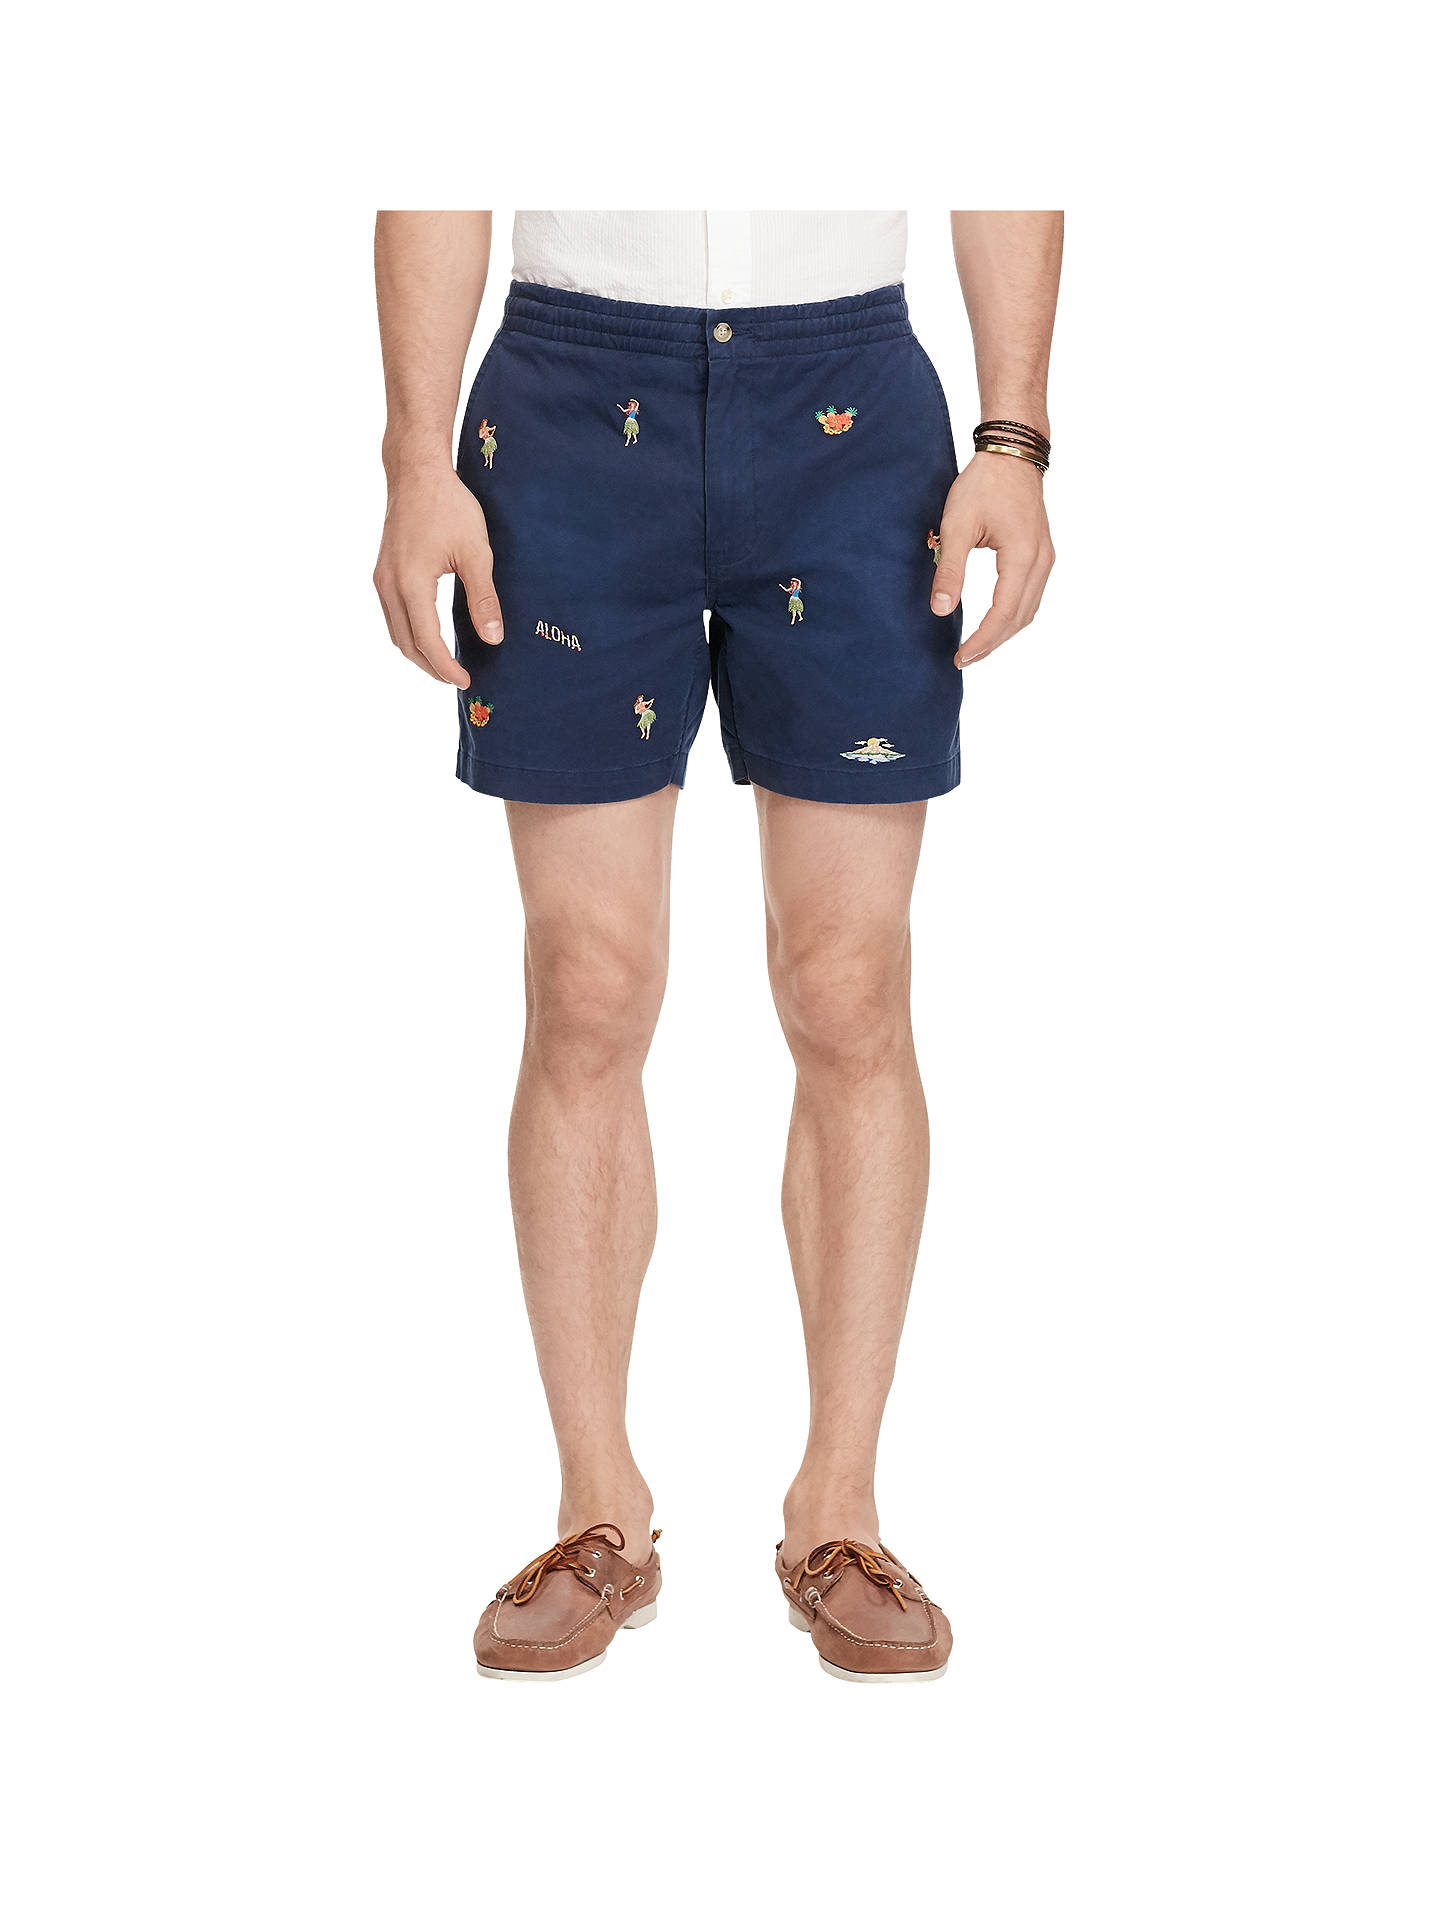 385d73857 Buy Polo Ralph Lauren Classic Fit Hawaiian Polo Prepster Shorts